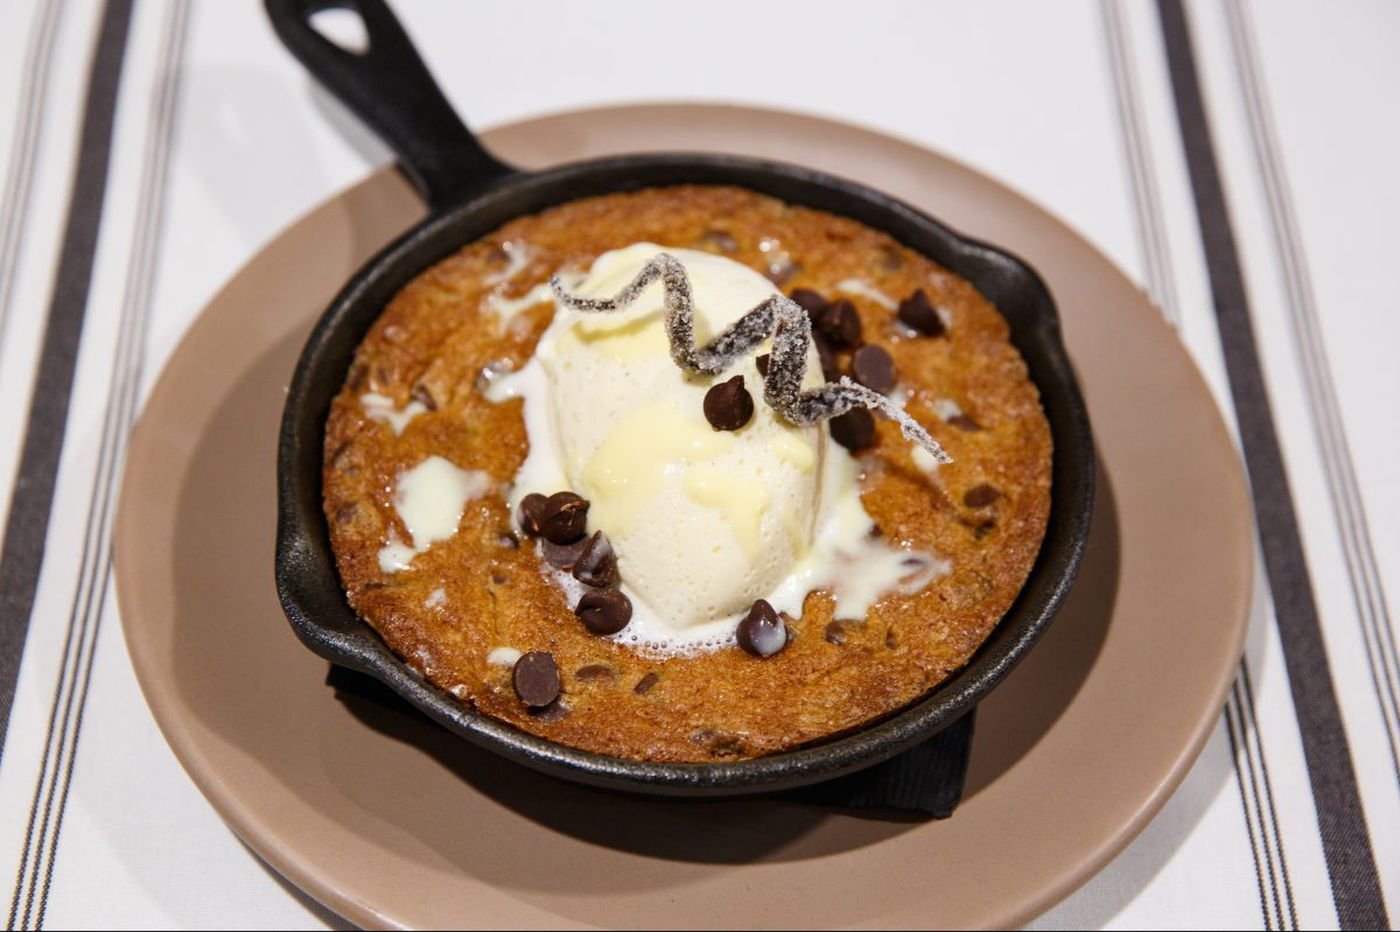 At Six Feet Under, one hot cookie